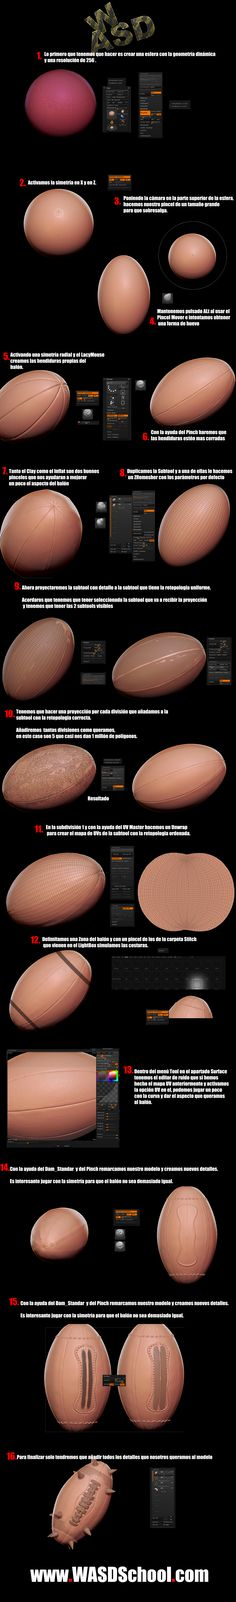 Ball Zbrush tutorial by WASDschool.deviantart.com on @deviantART